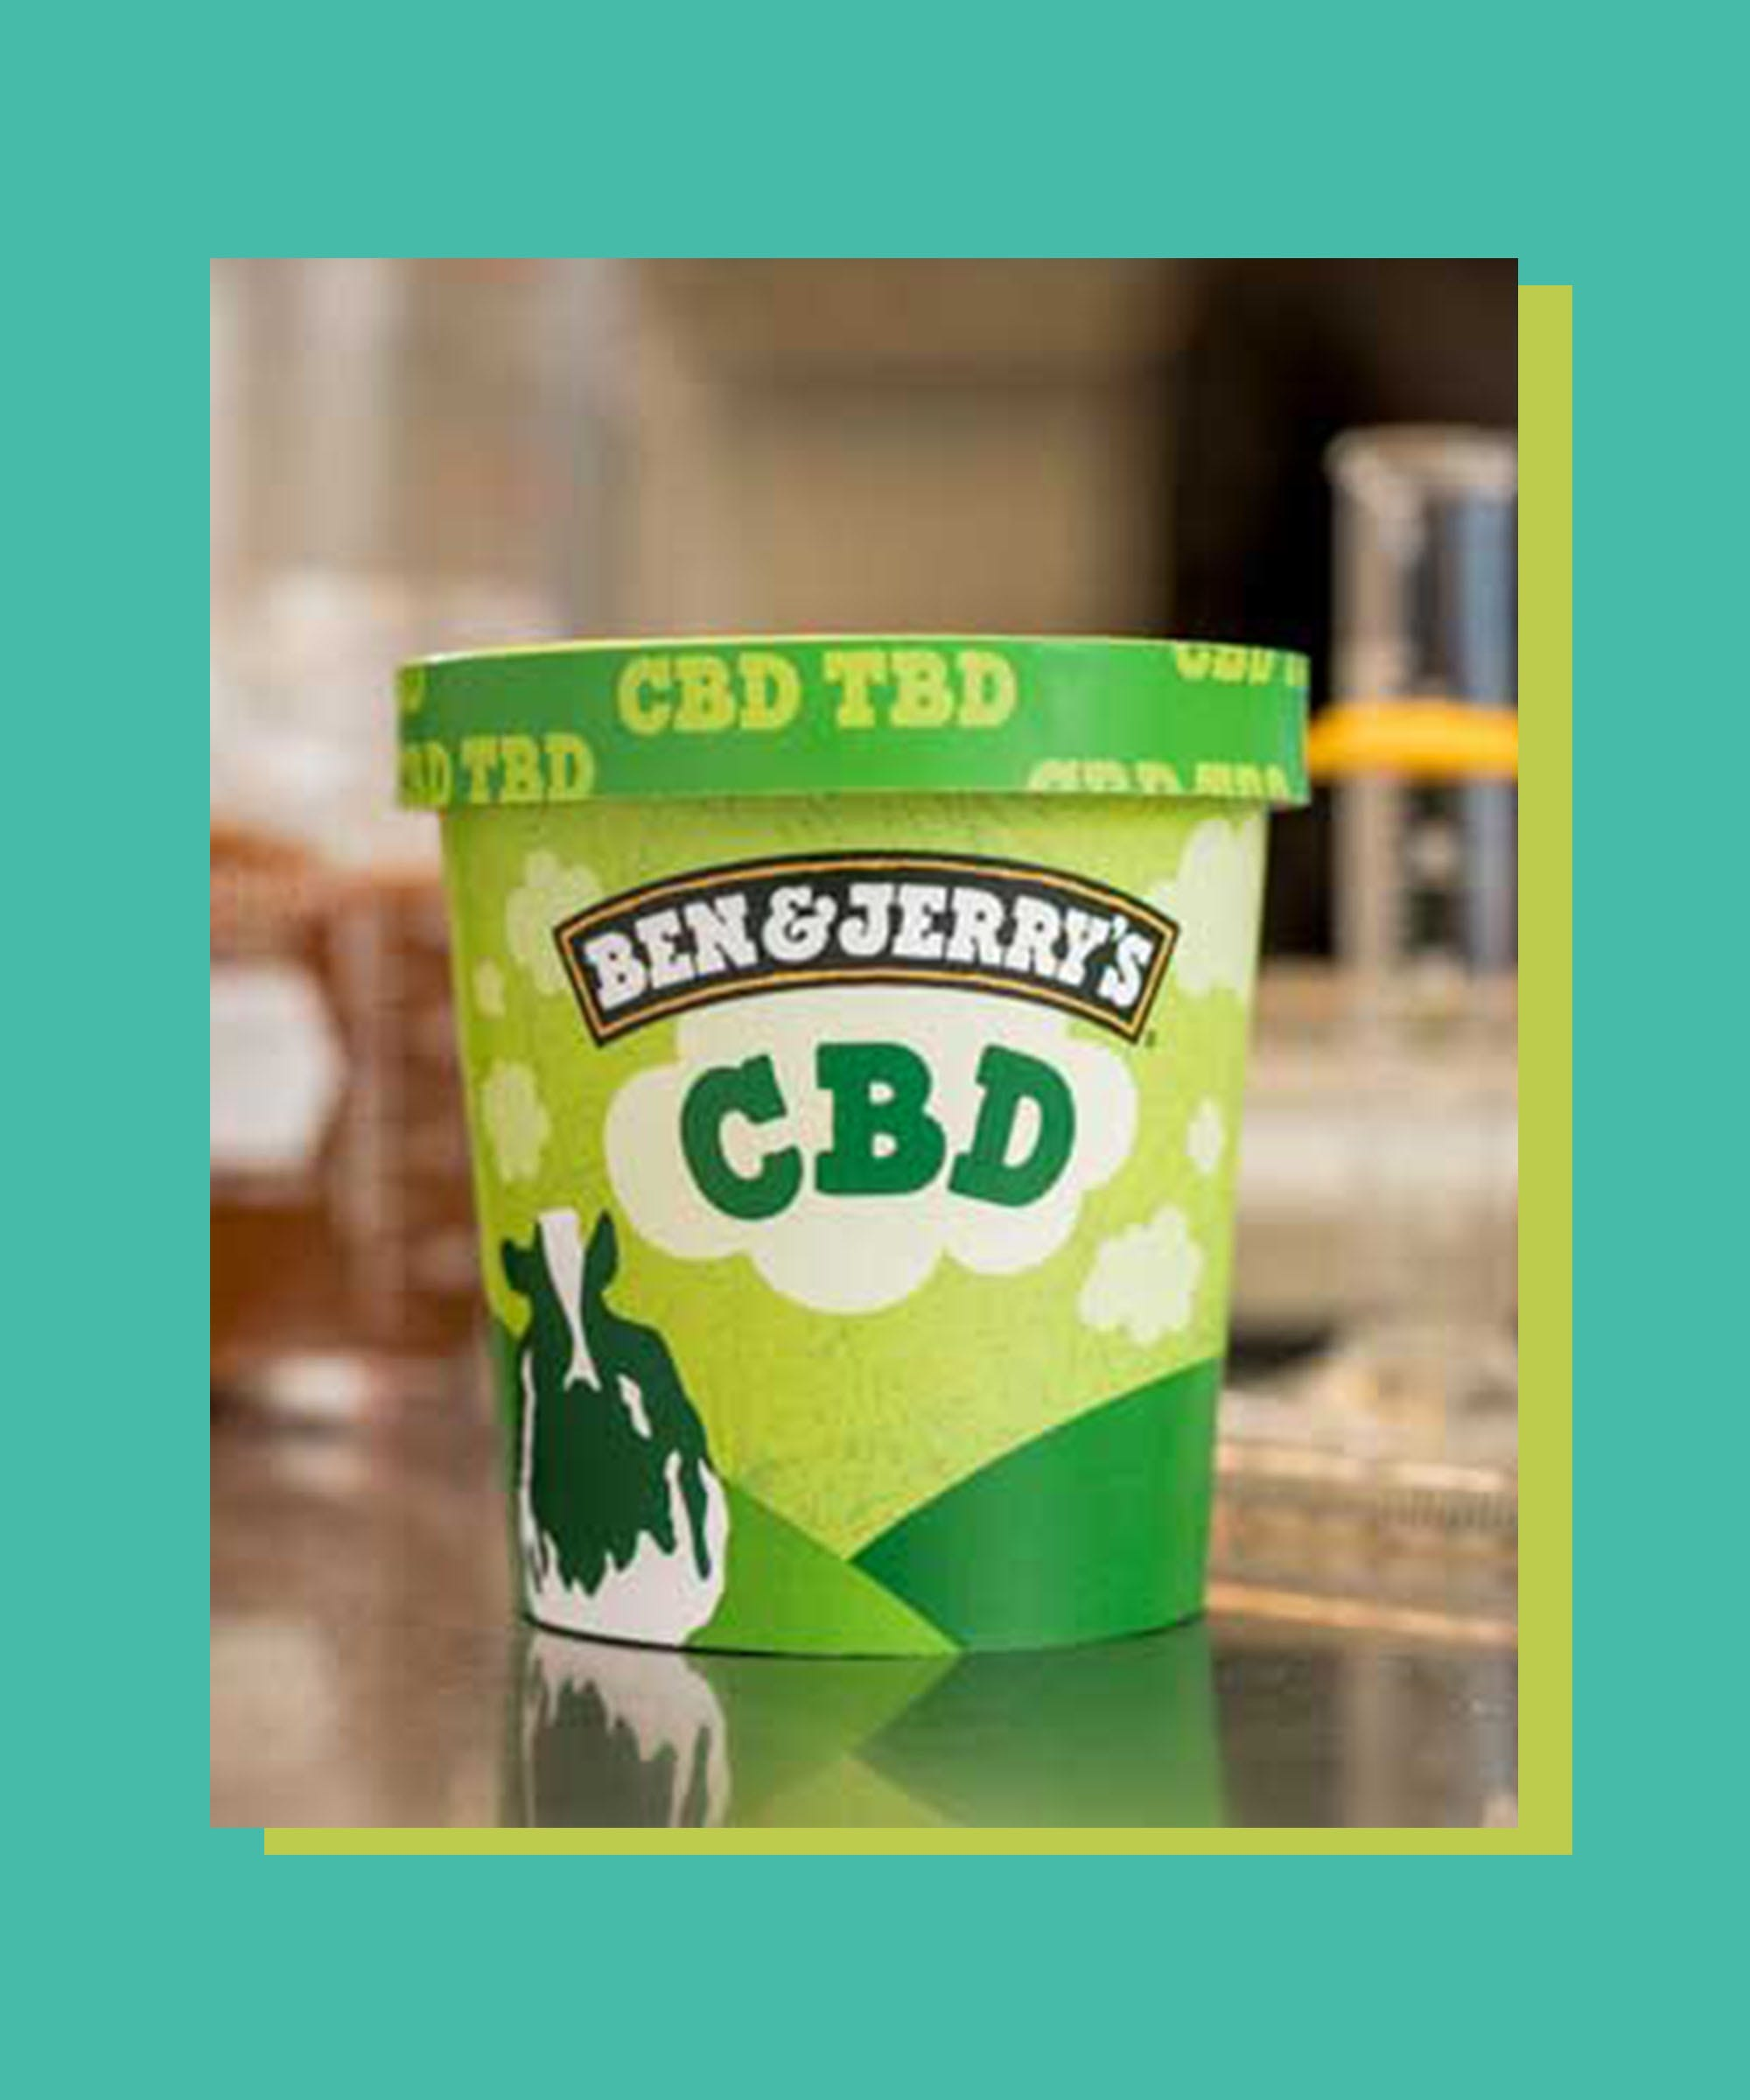 Ben & Jerry's Announces Plans To Help Everyone Chill Out With CBD-Infused Ice Cream